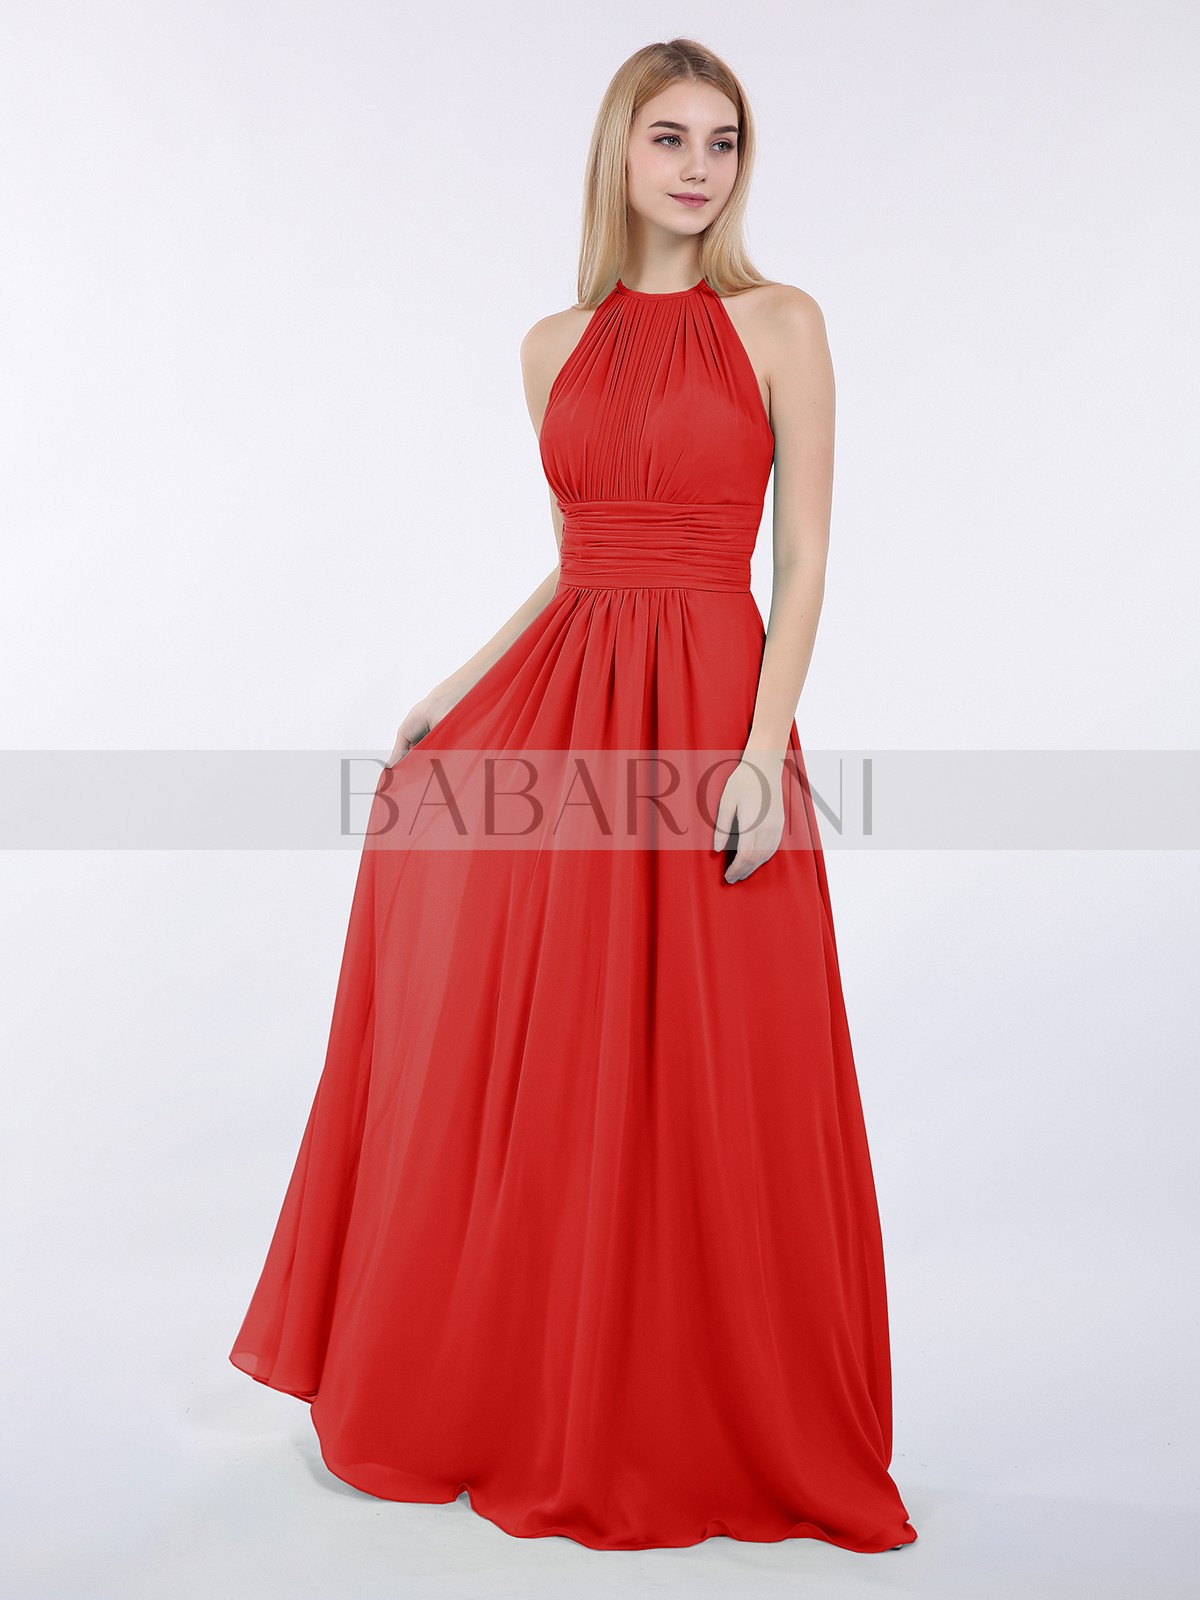 9ef226bca942 A-line Chiffon Wisteria Zipper Ruched, Pleated Floor-length Halter  Sleeveless New Arrivals. Loading zoom